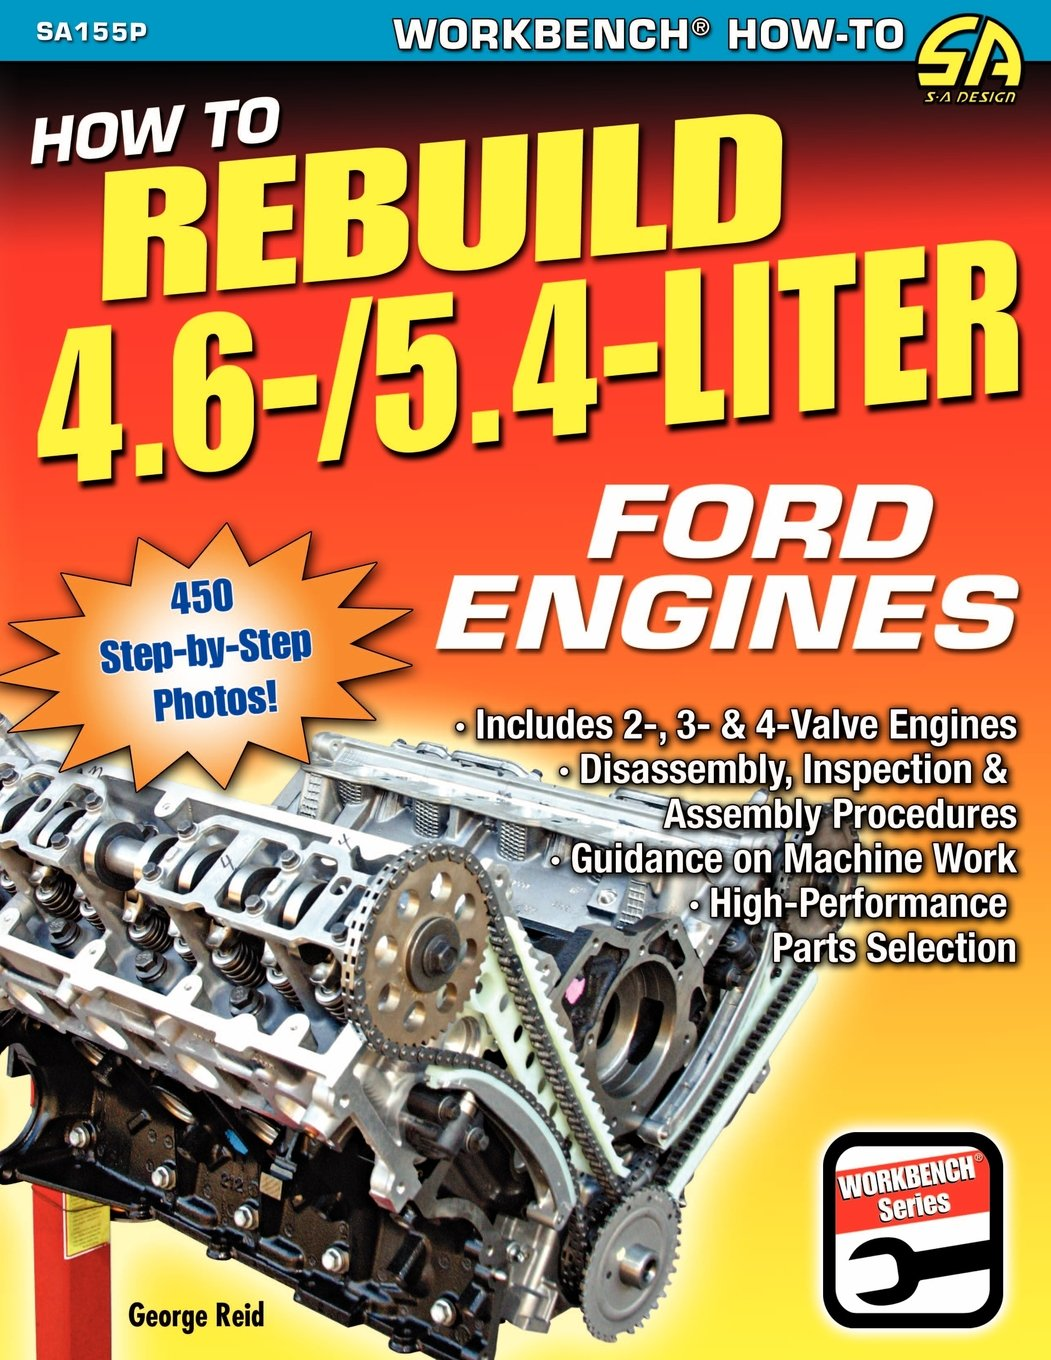 How to Rebuild 4.6-/5.4-Liter Ford Engines: George Reid: 9781613250433:  Amazon.com: Books